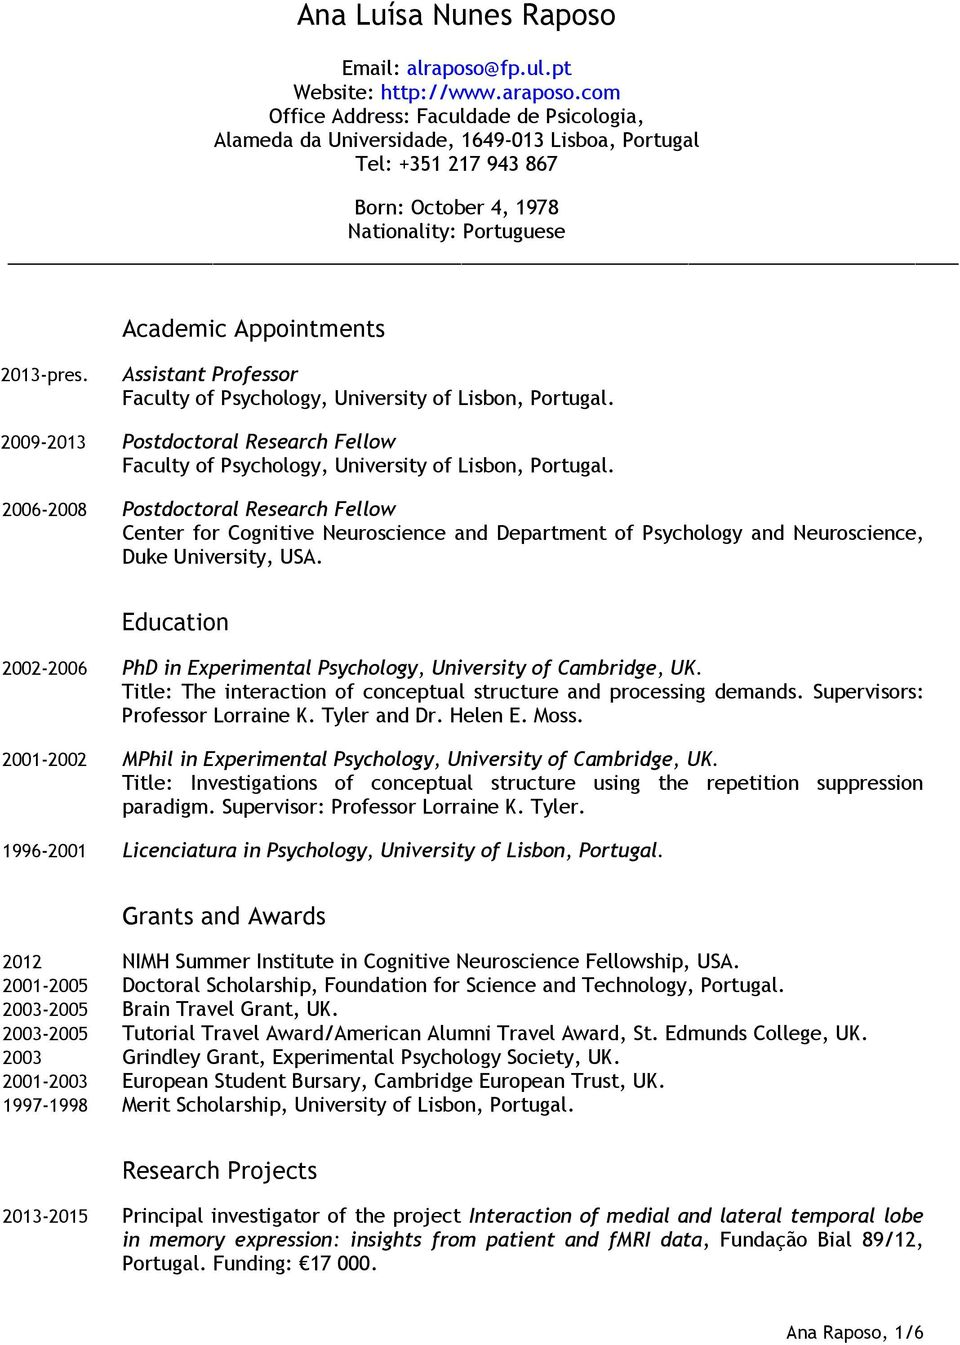 Assistant Professor Faculty of Psychology, University of Lisbon, 2009-2013 Postdoctoral Research Fellow Faculty of Psychology, University of Lisbon, 2006-2008 Postdoctoral Research Fellow Center for